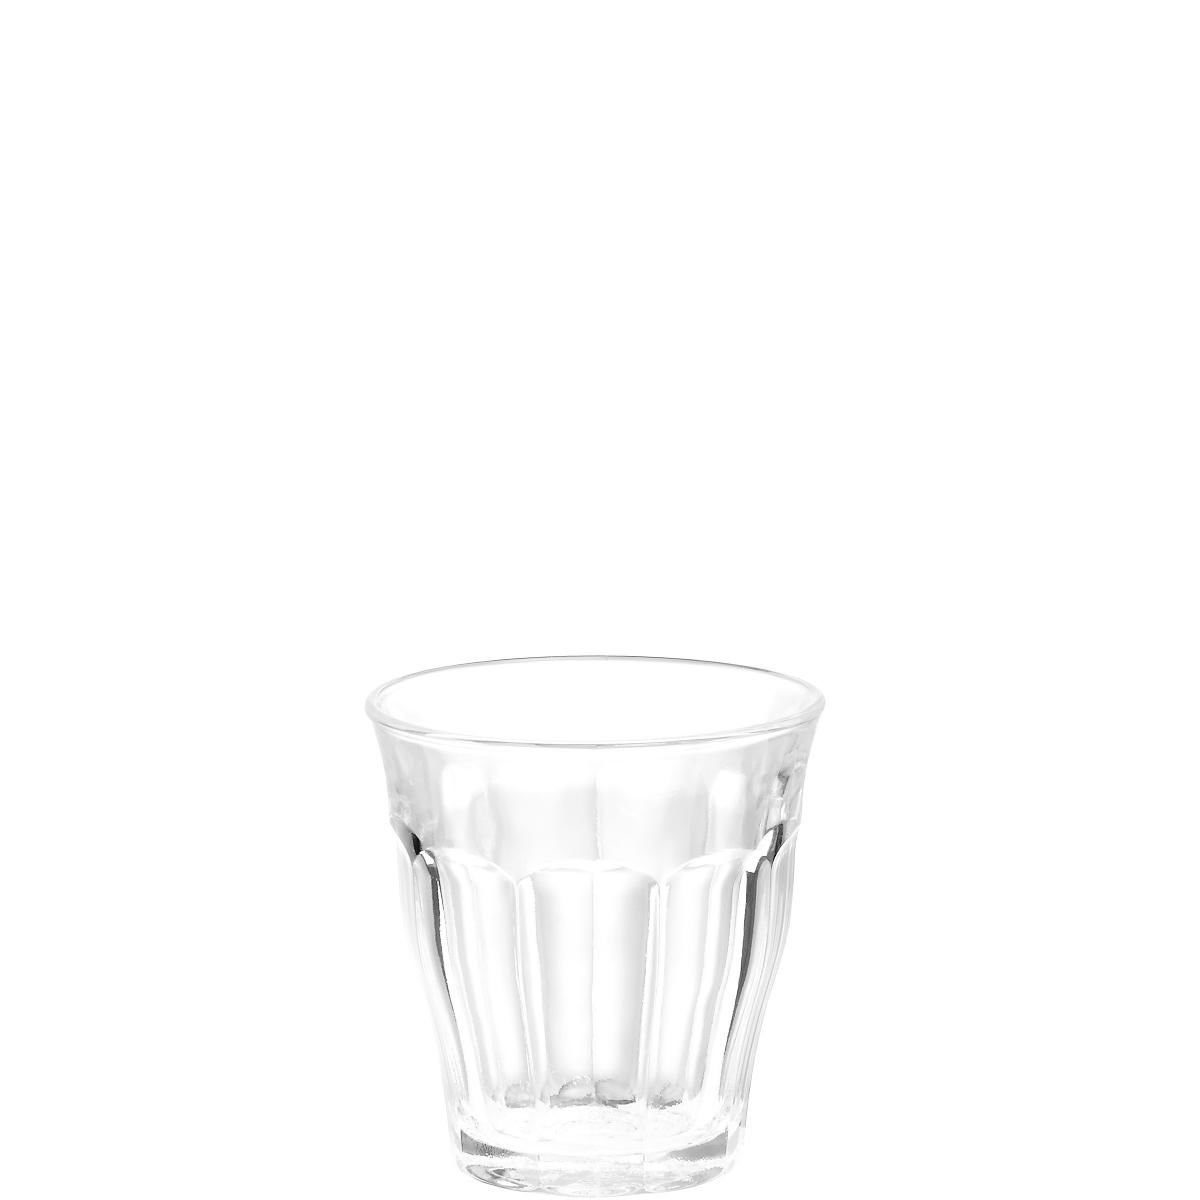 BUTLERS BARRISTO »Glas 90 ml«